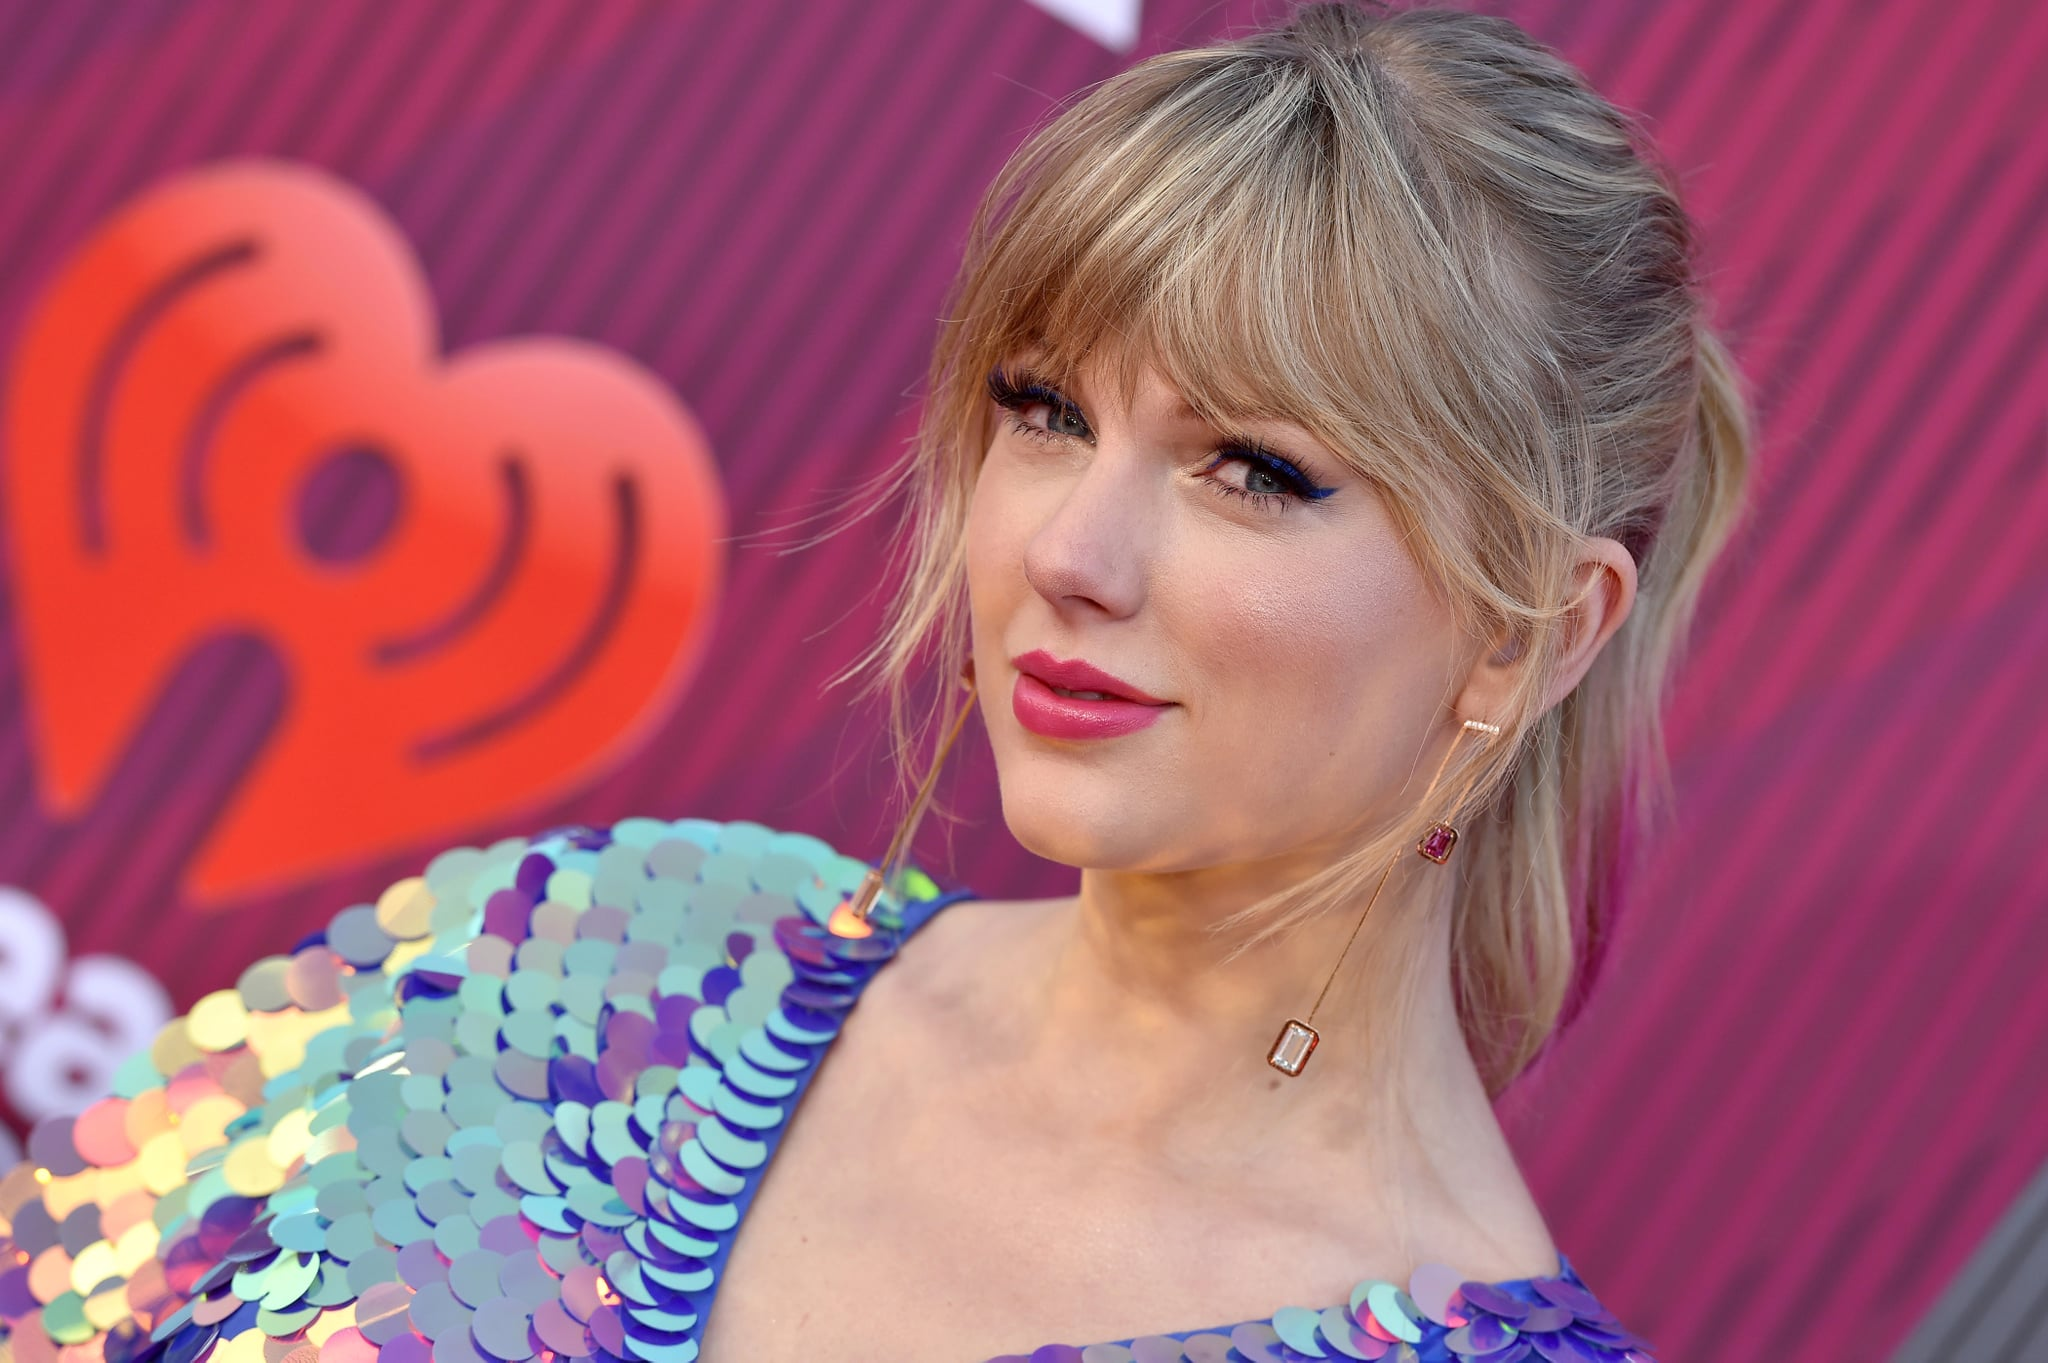 LOS ANGELES, CALIFORNIA - MARCH 14: Taylor Swift arrives at the 2019 iHeartRadio Music Awards which broadcasted live on FOX at Microsoft Theater on March 14, 2019 in Los Angeles, California. (Photo by Axelle/Bauer-Griffin/FilmMagic)